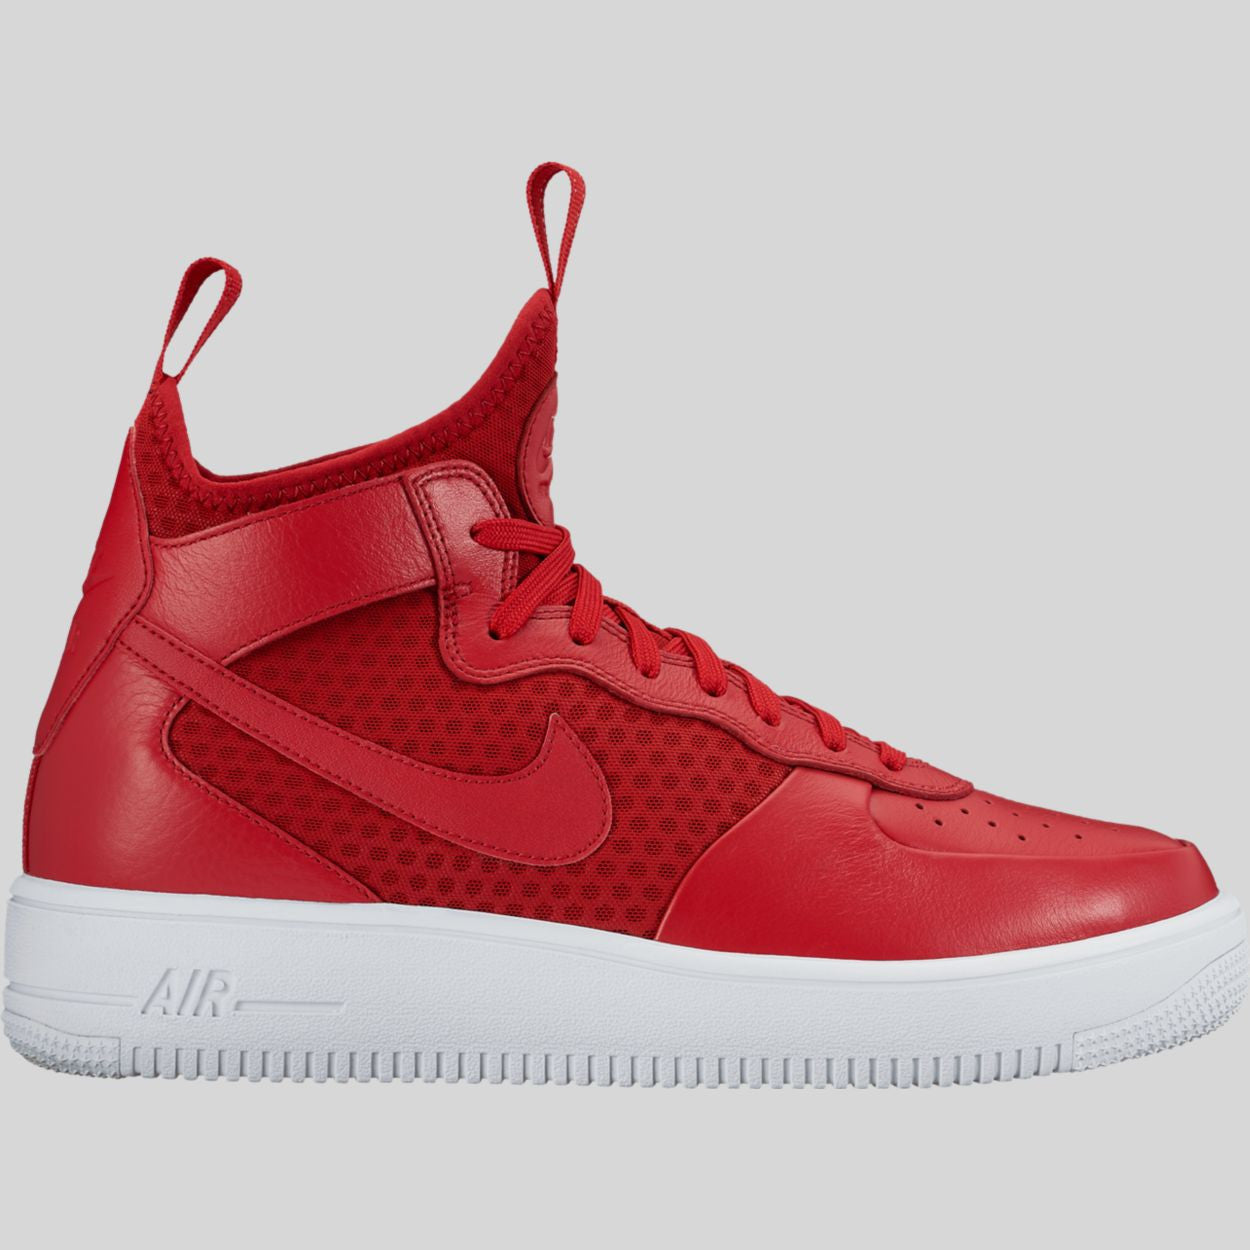 info for c9770 44ce8 Nike Air Force 1 Ultraforce Mid Gym Red White (864014-600)